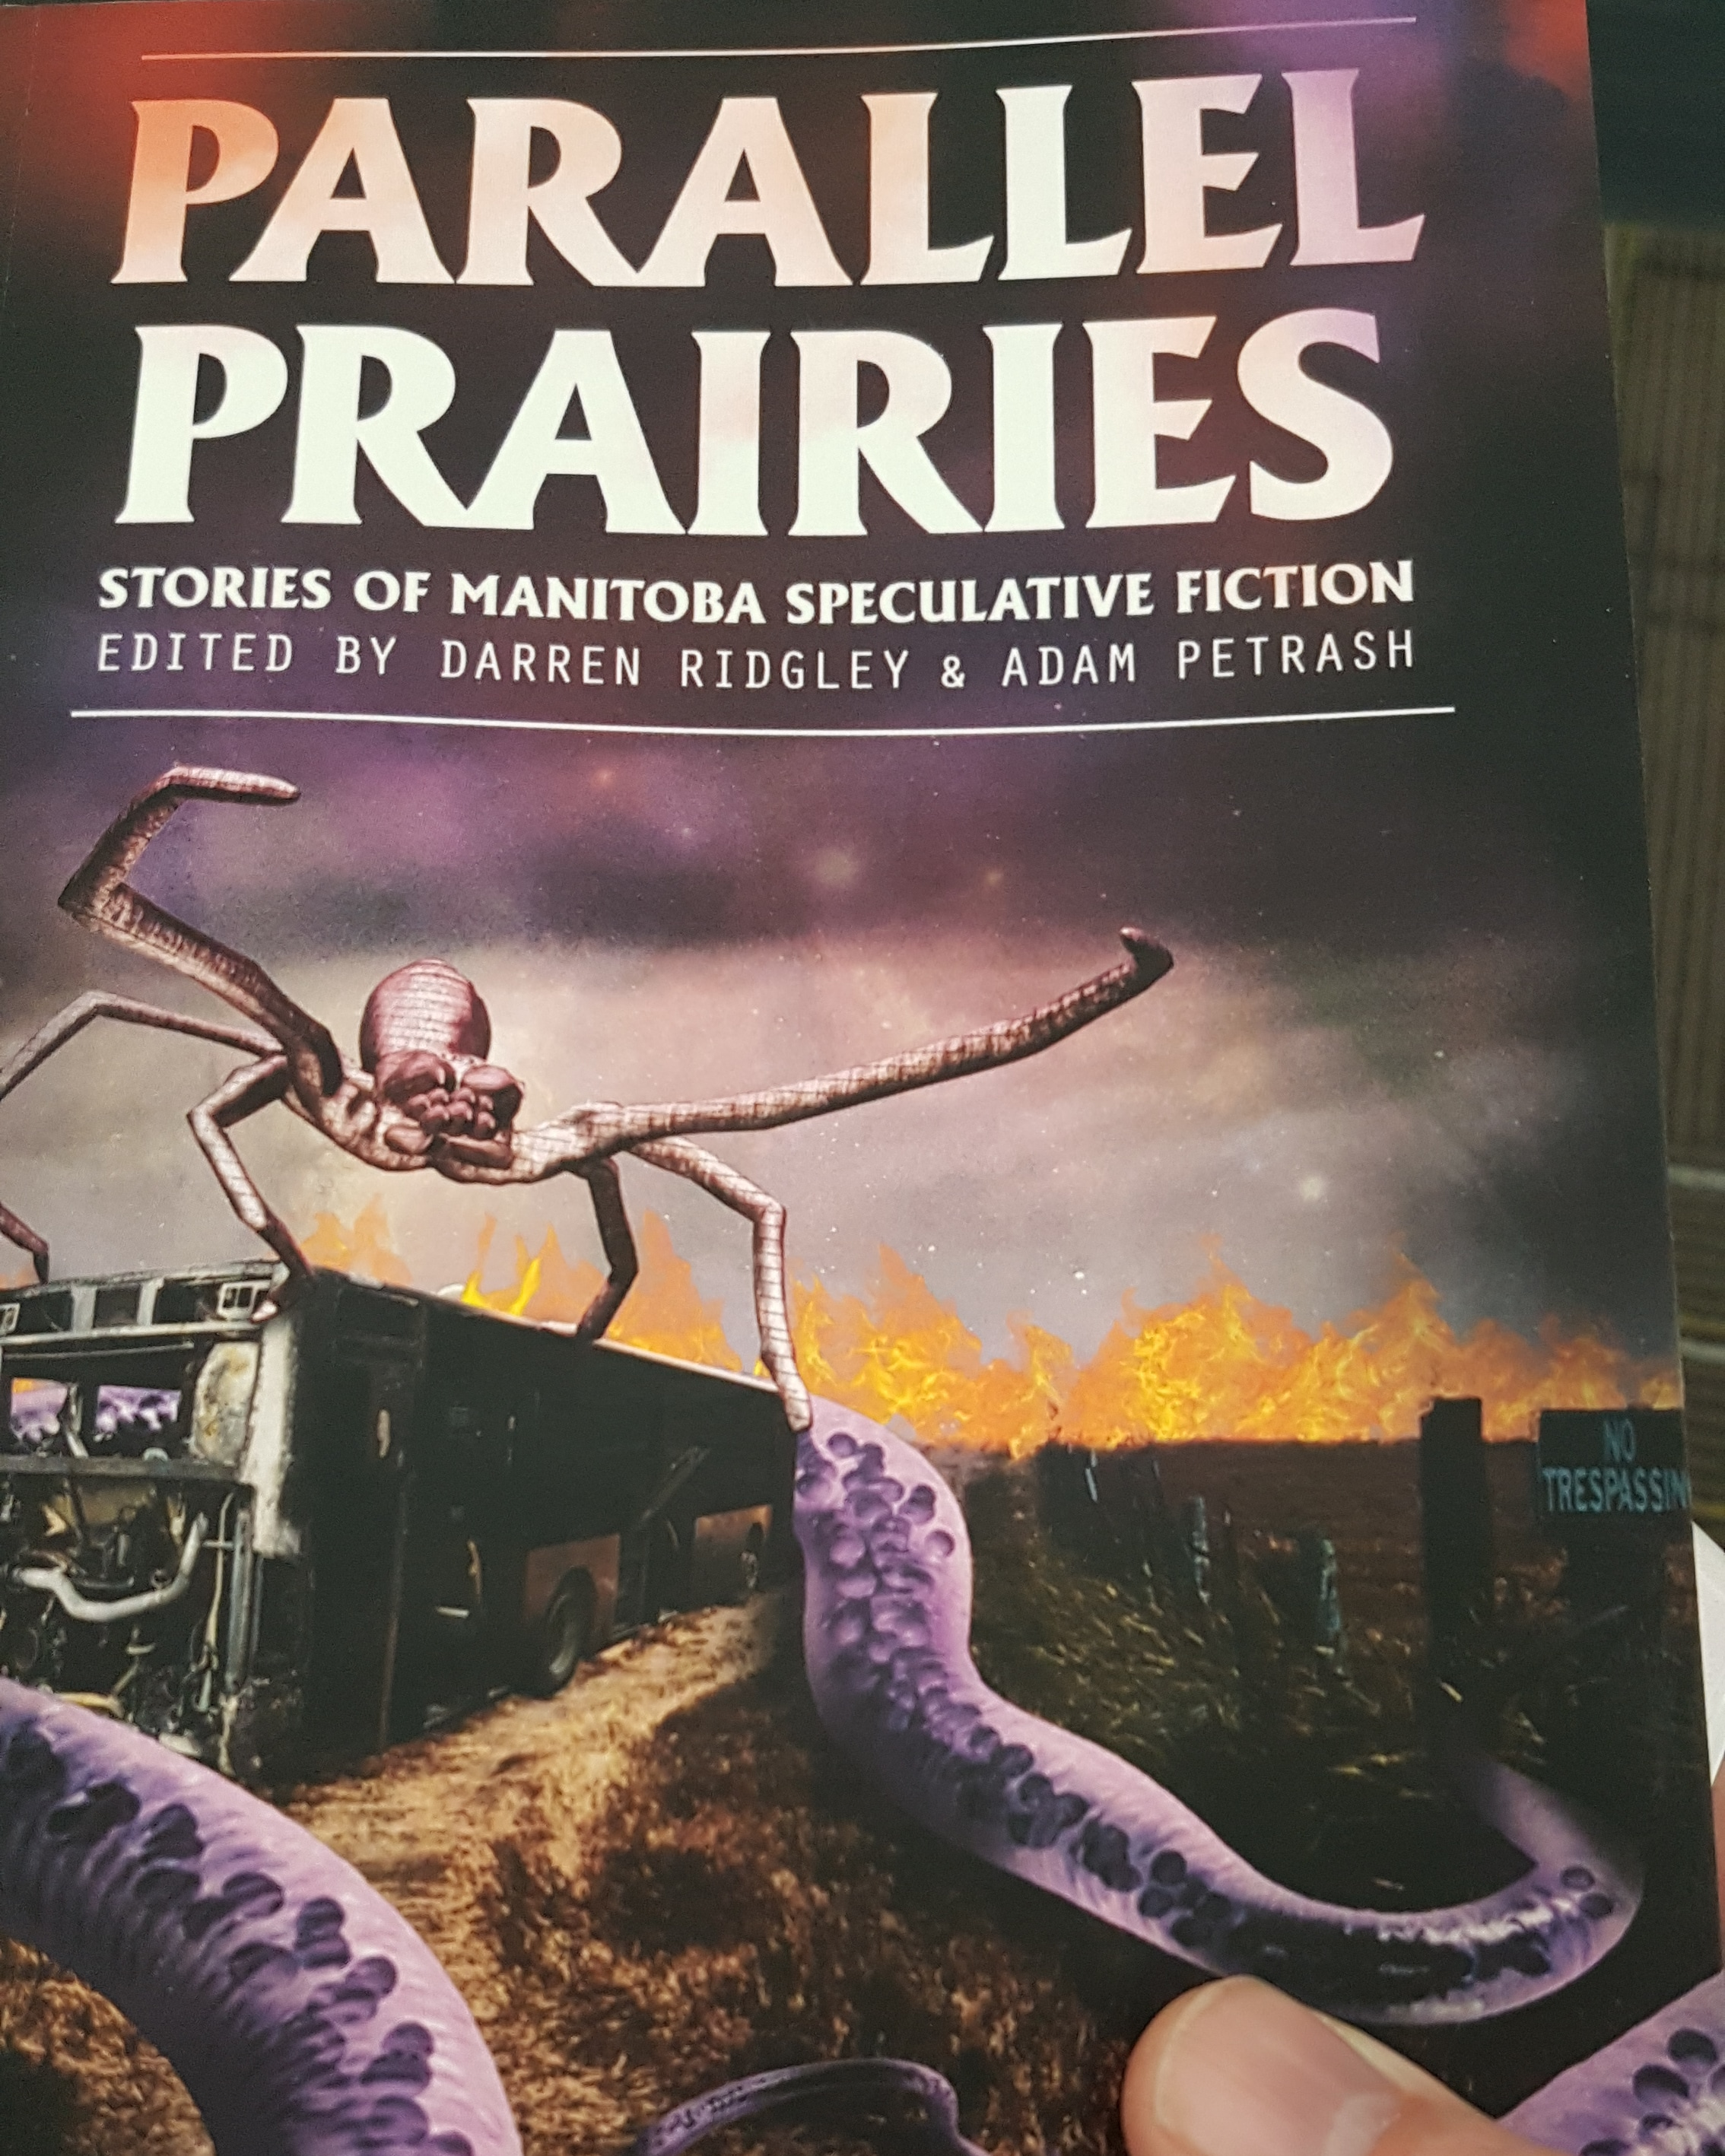 The cover of Parallel Prairies